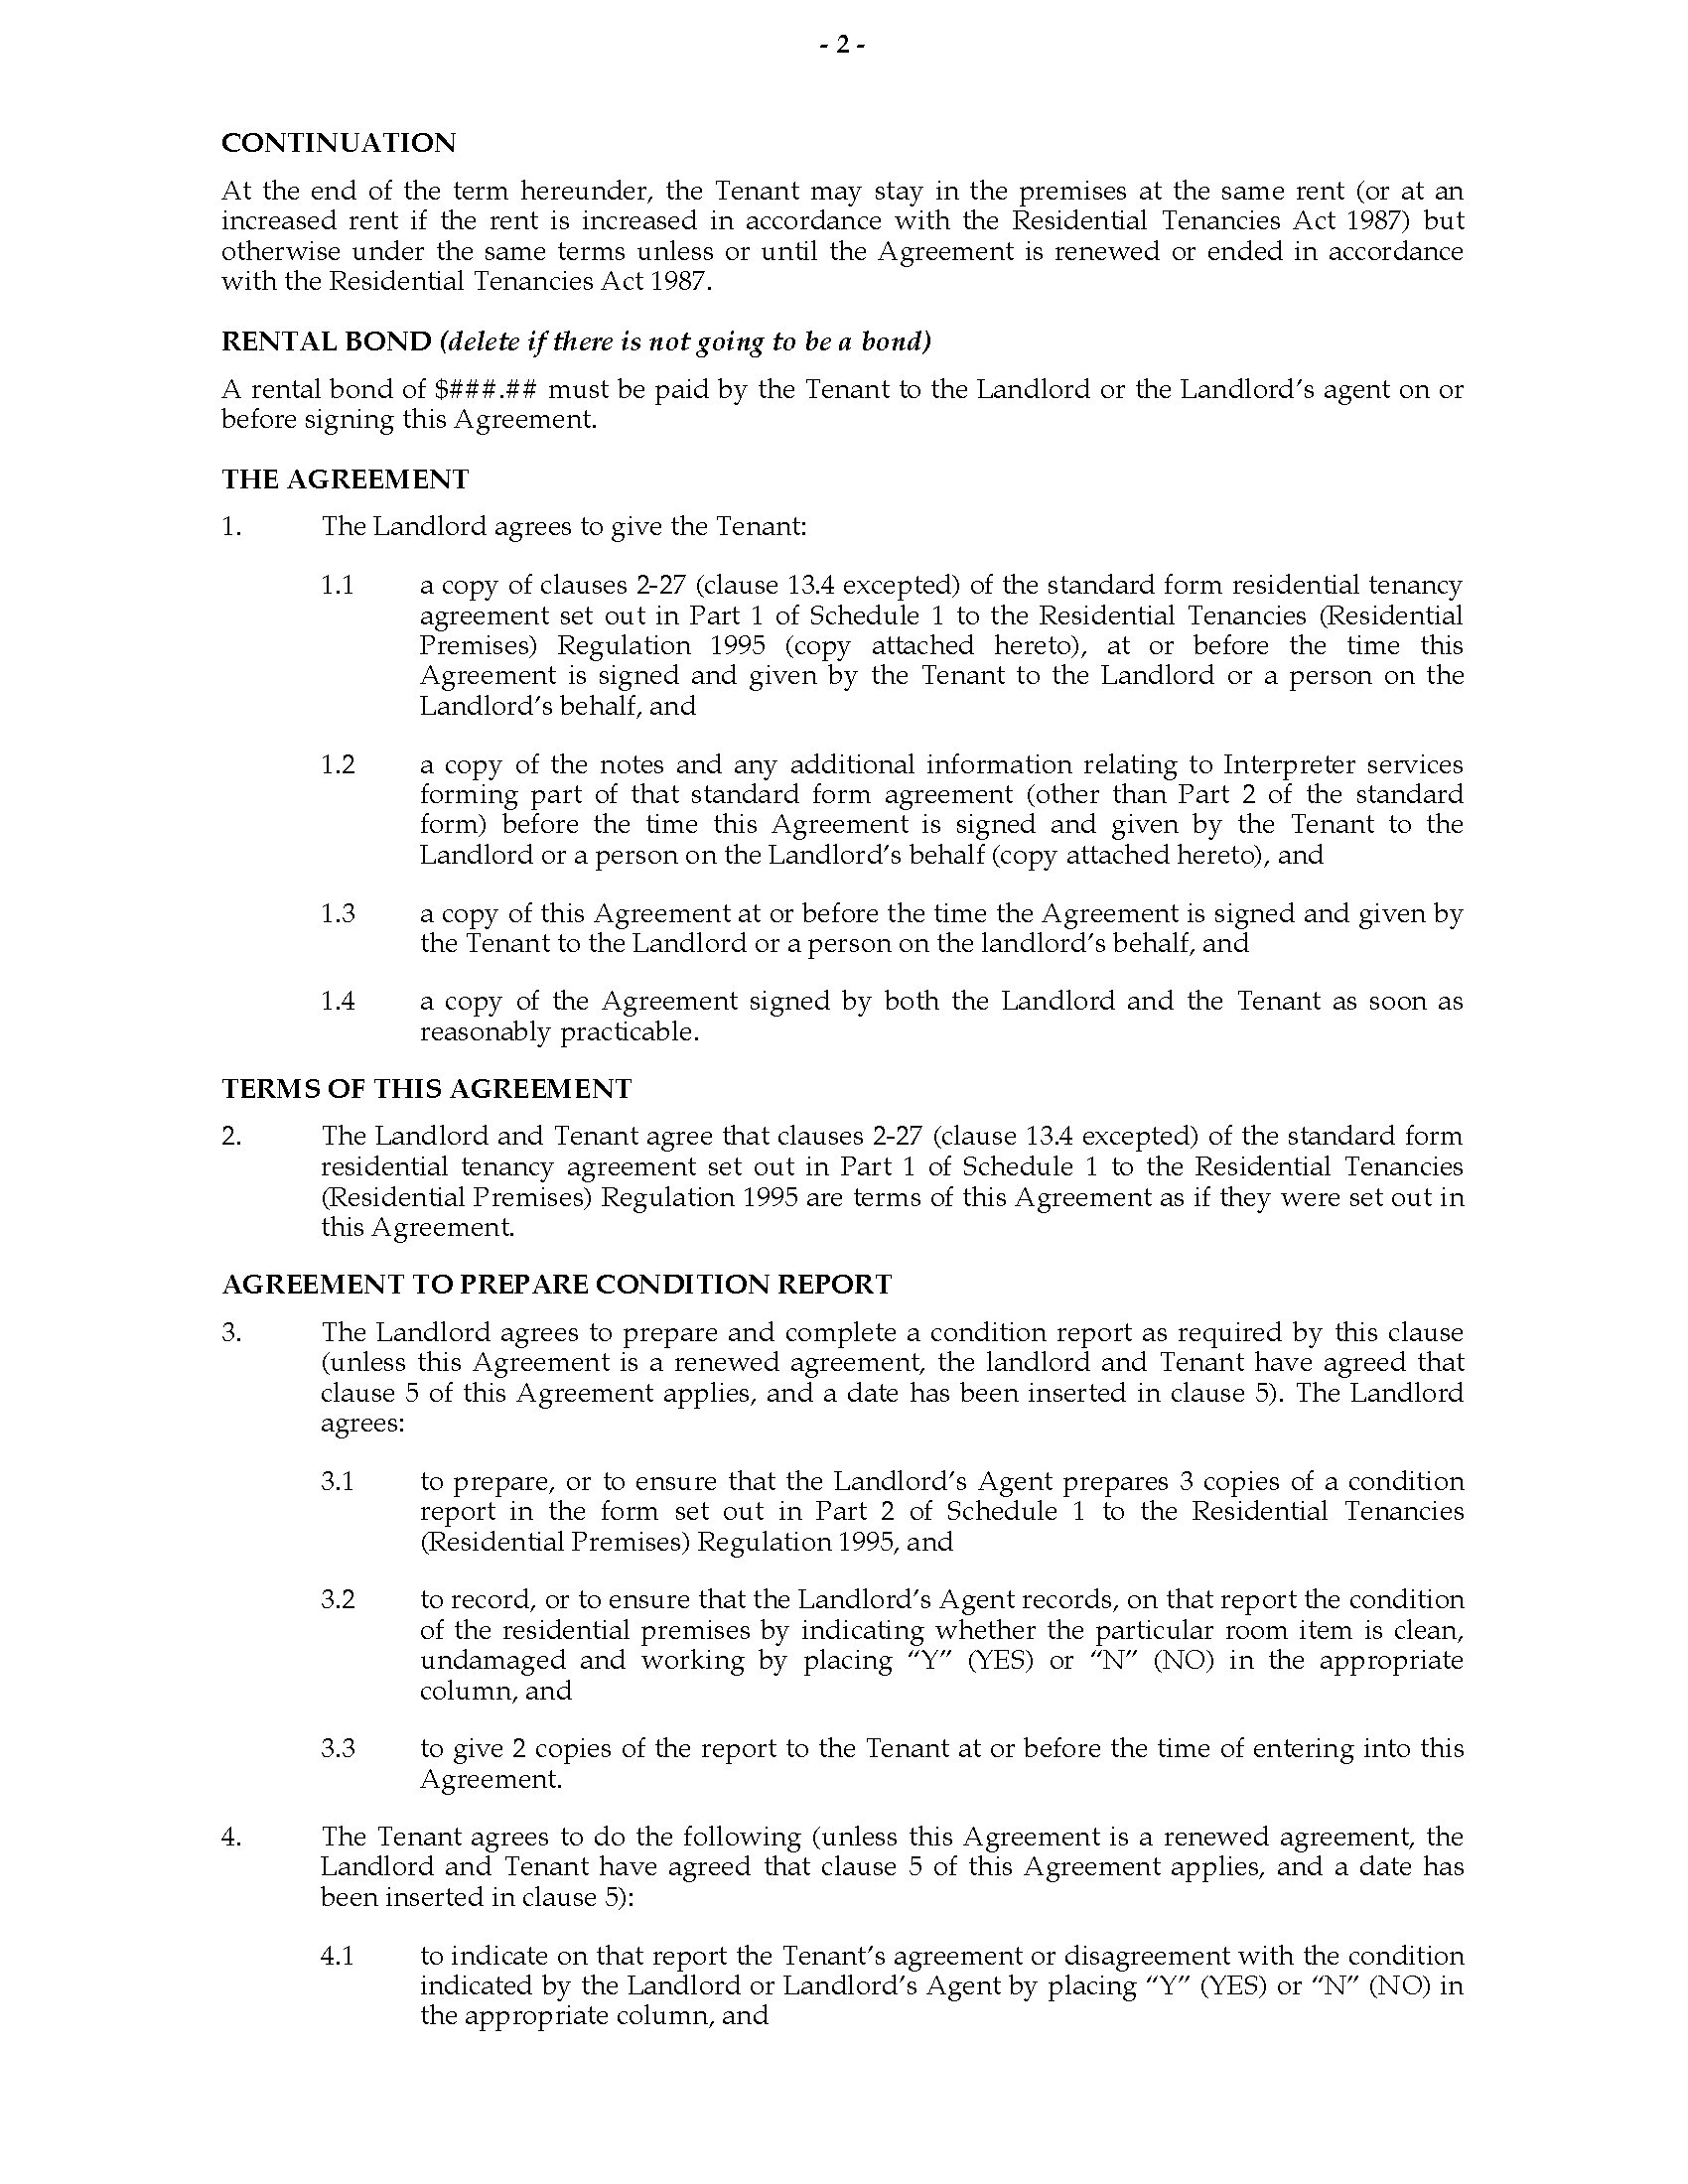 Nsw Residential Tenancy Agreement More Than 3 Years Legal Forms